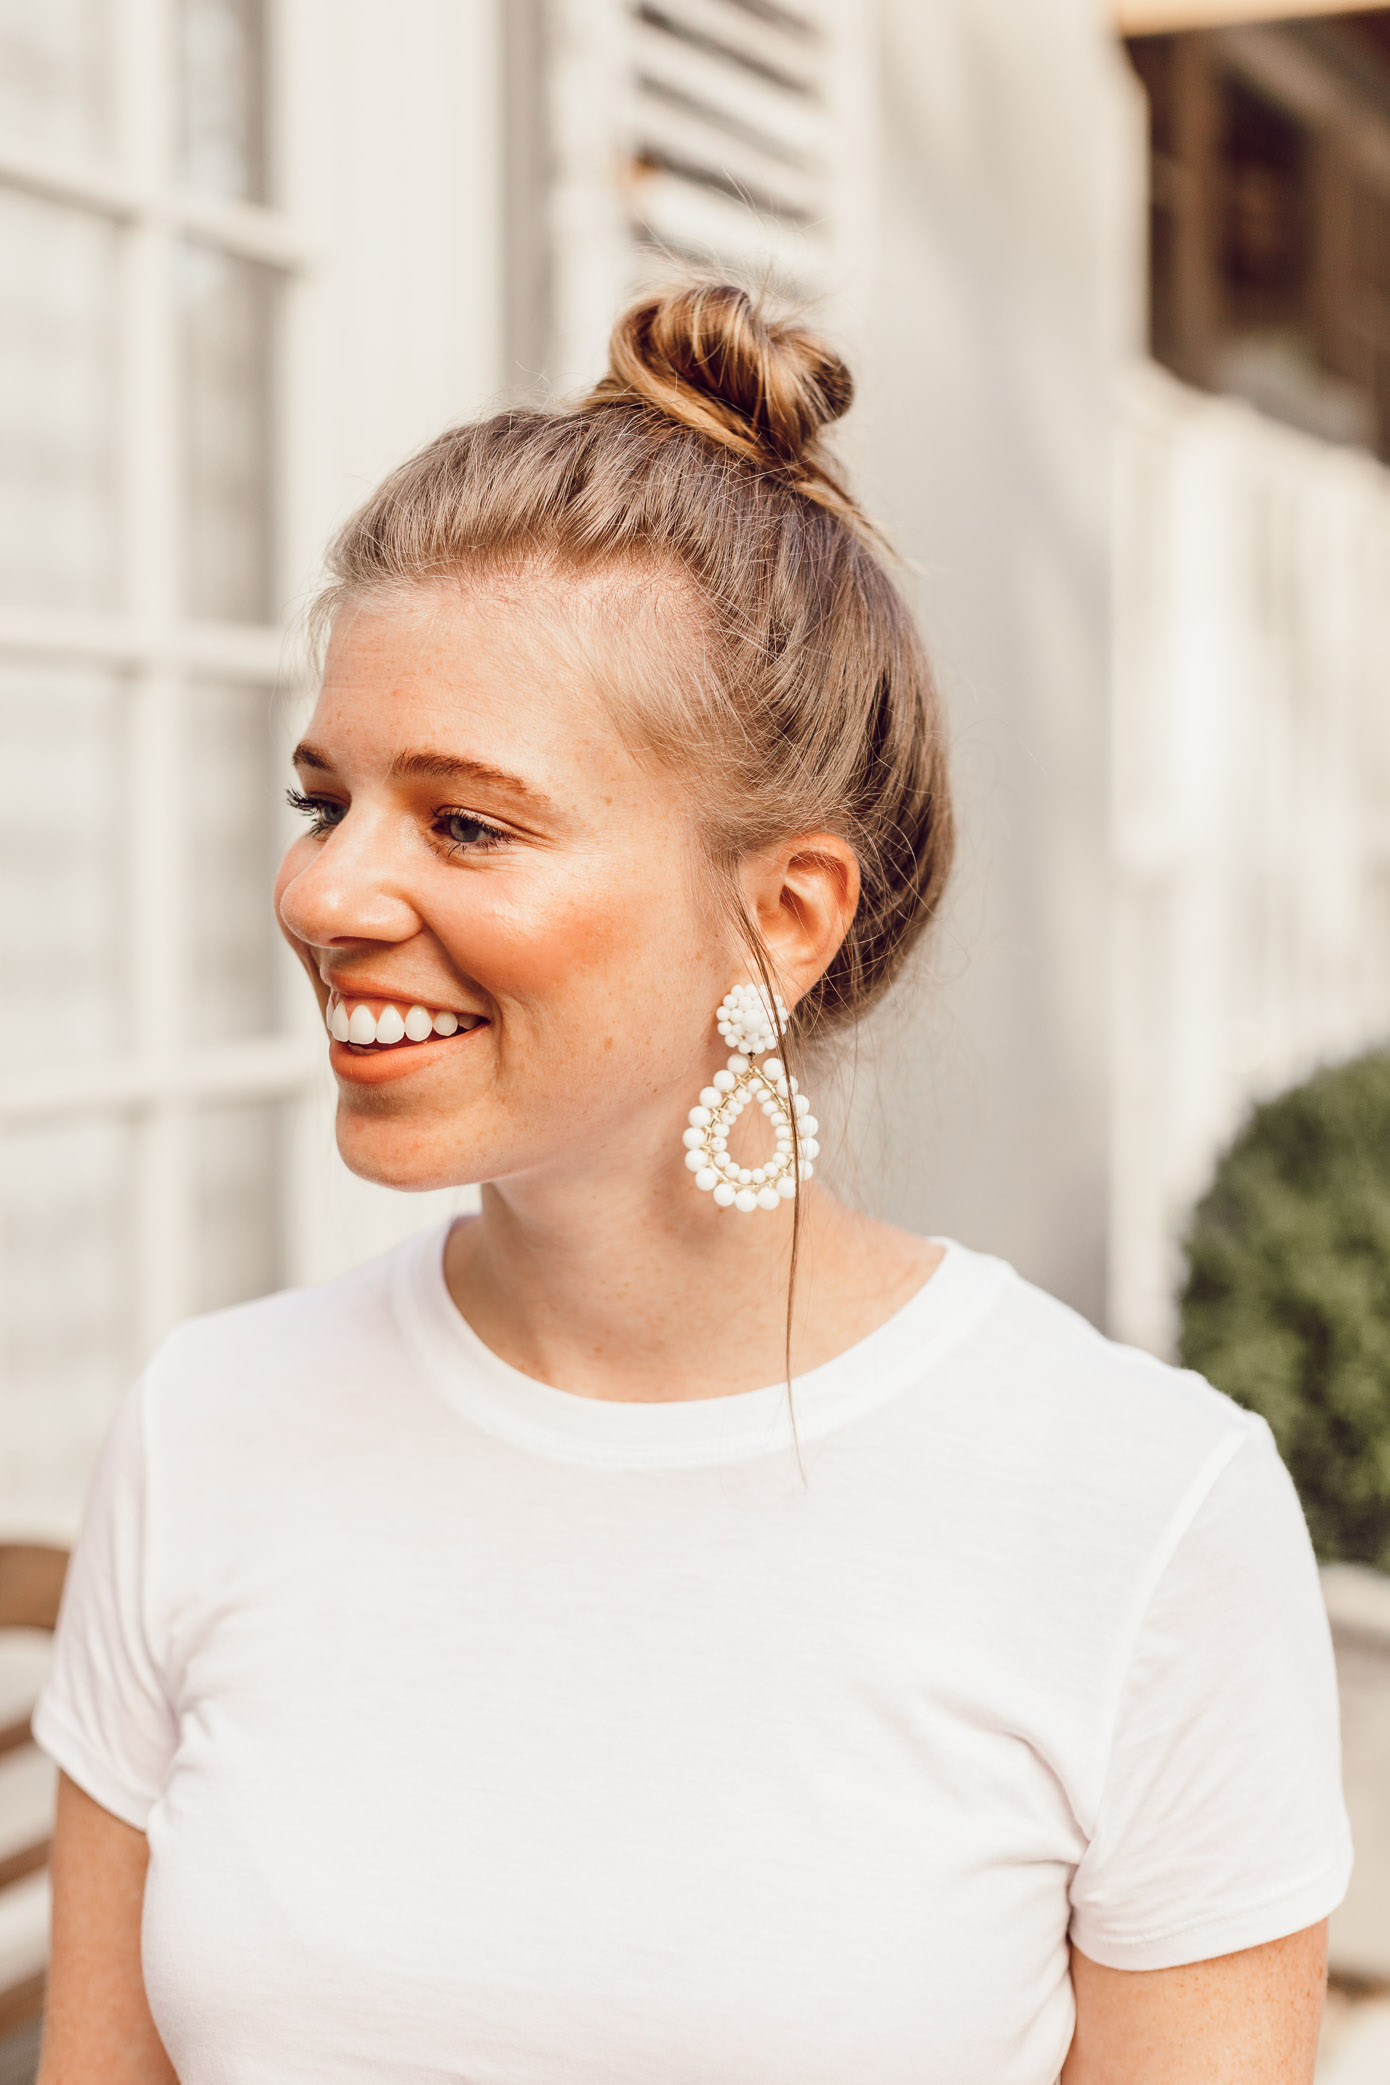 Step Out of Your Color Comfort Zone | Messy Topknot, Basic White Tee, White Statement Earrings styled on Louella Reese